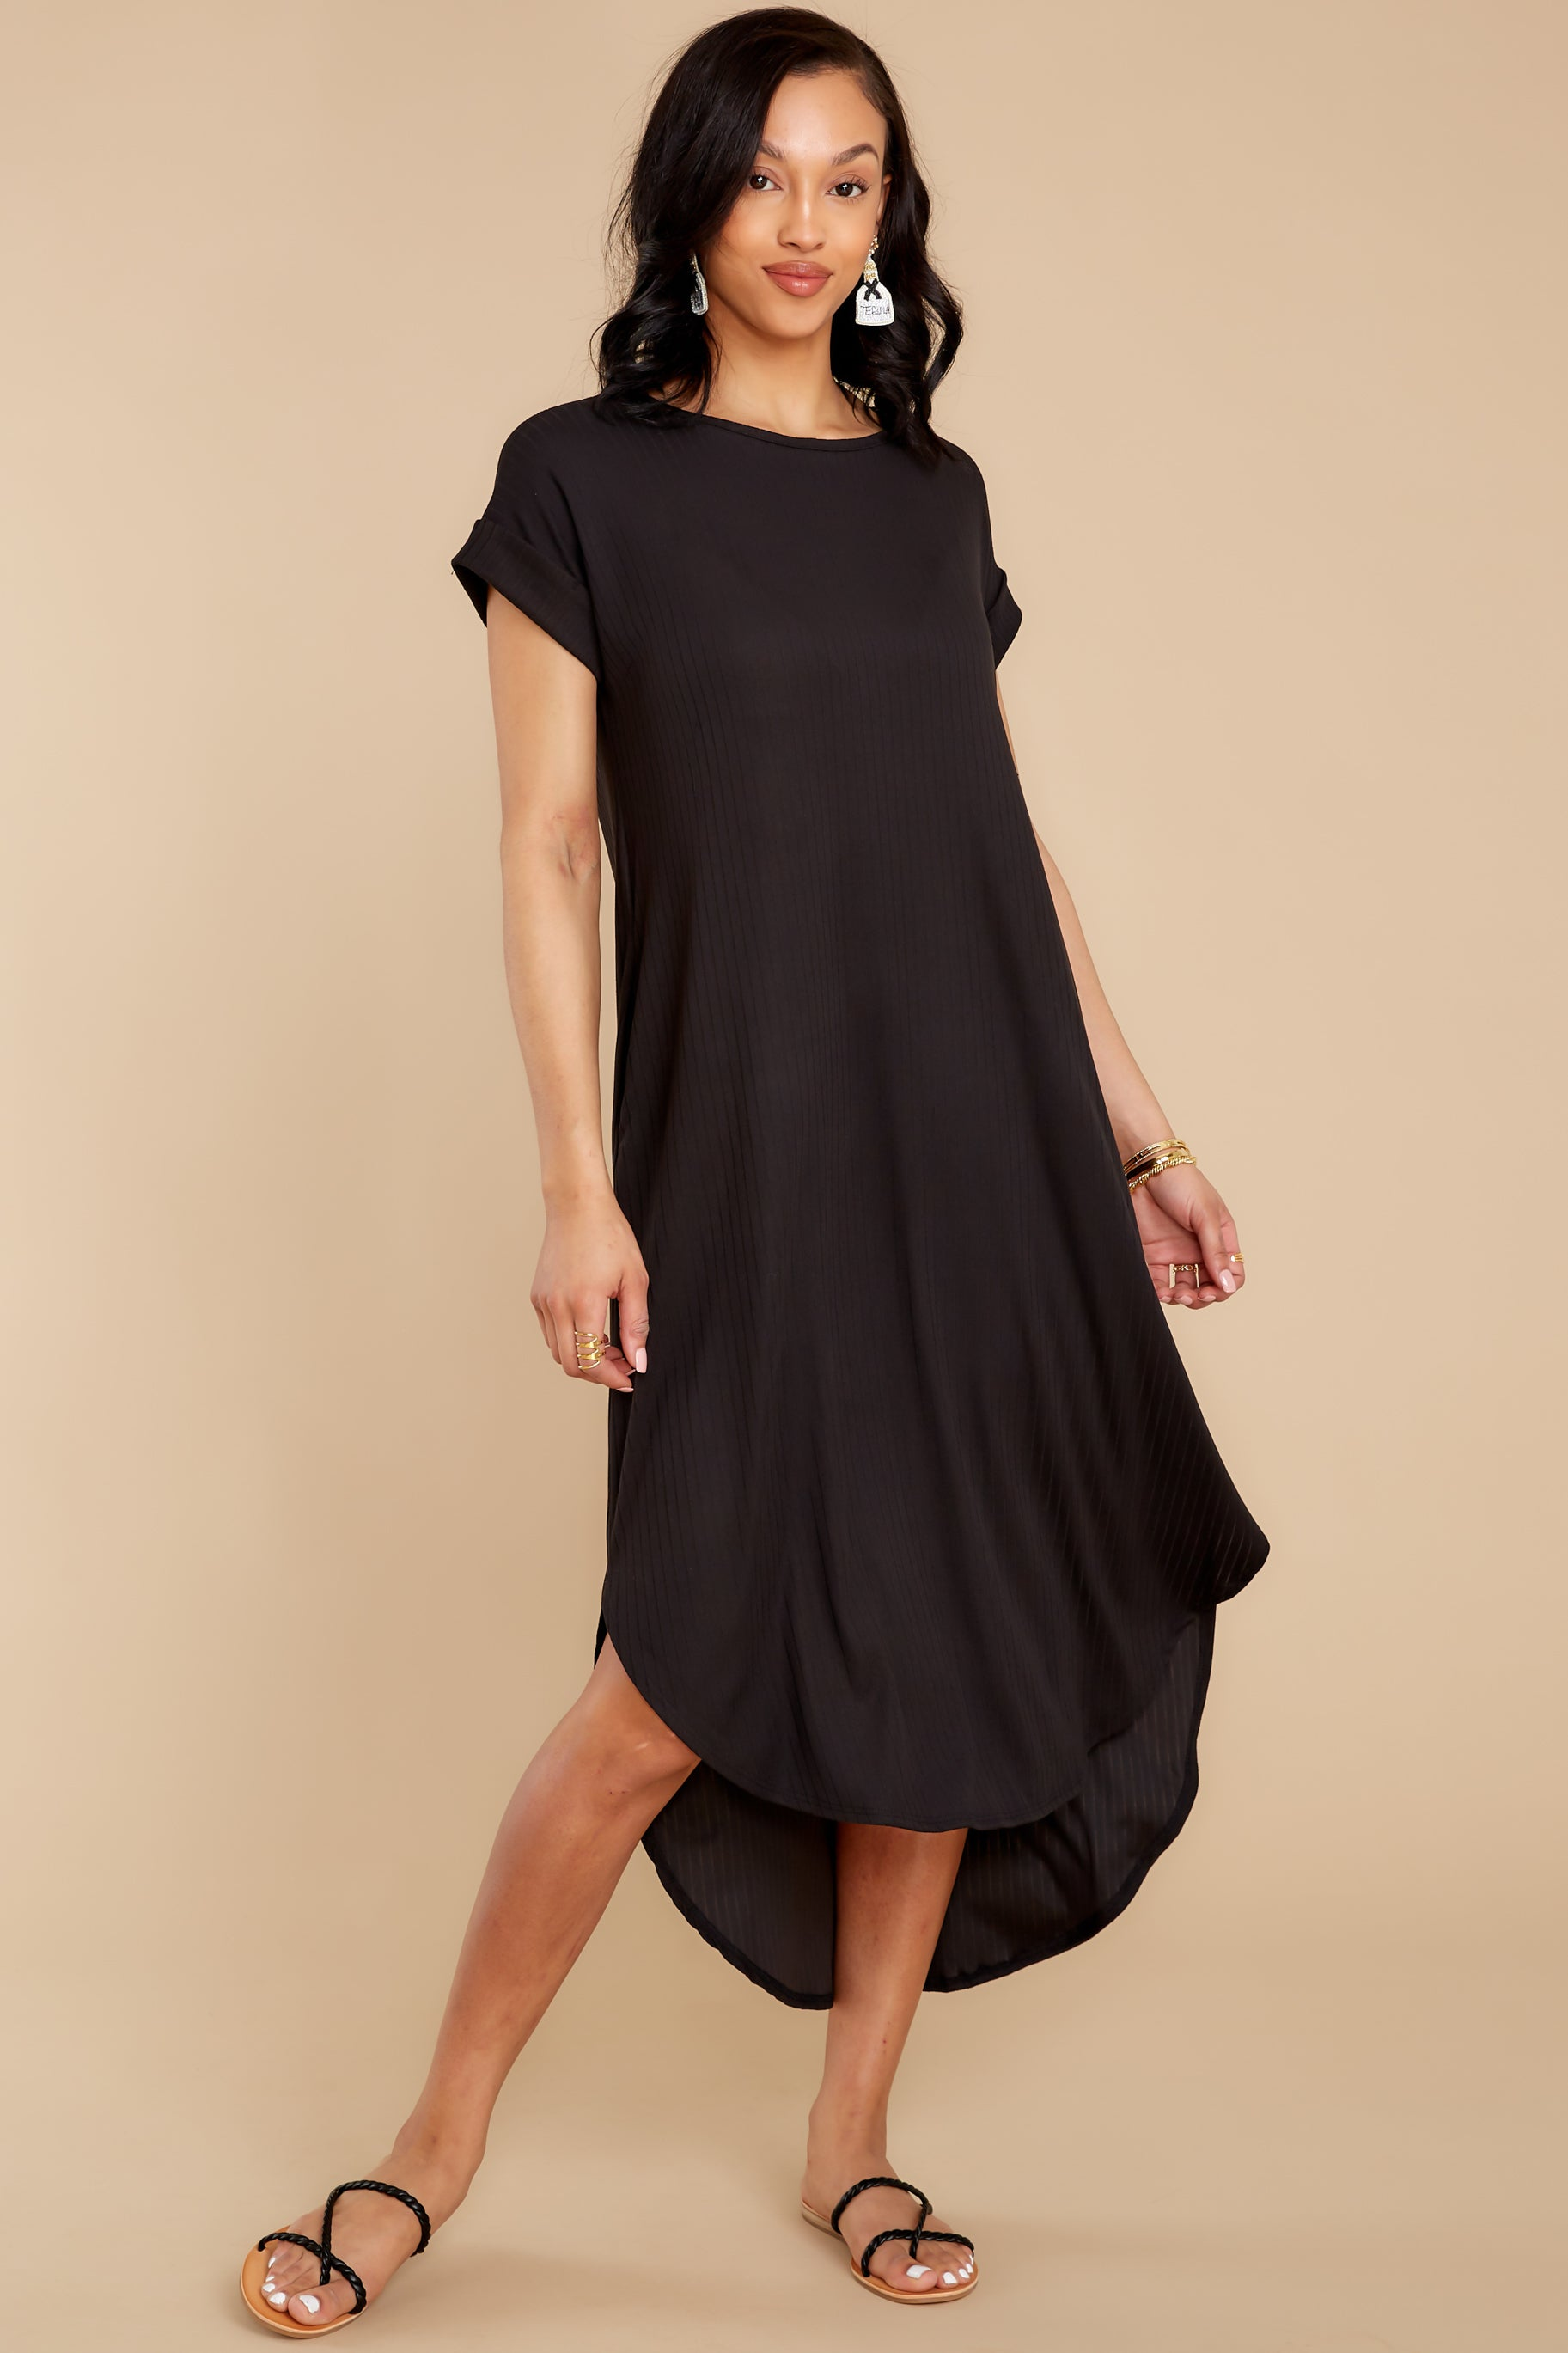 8 Come Away With Me Black Midi Dress at reddress.com